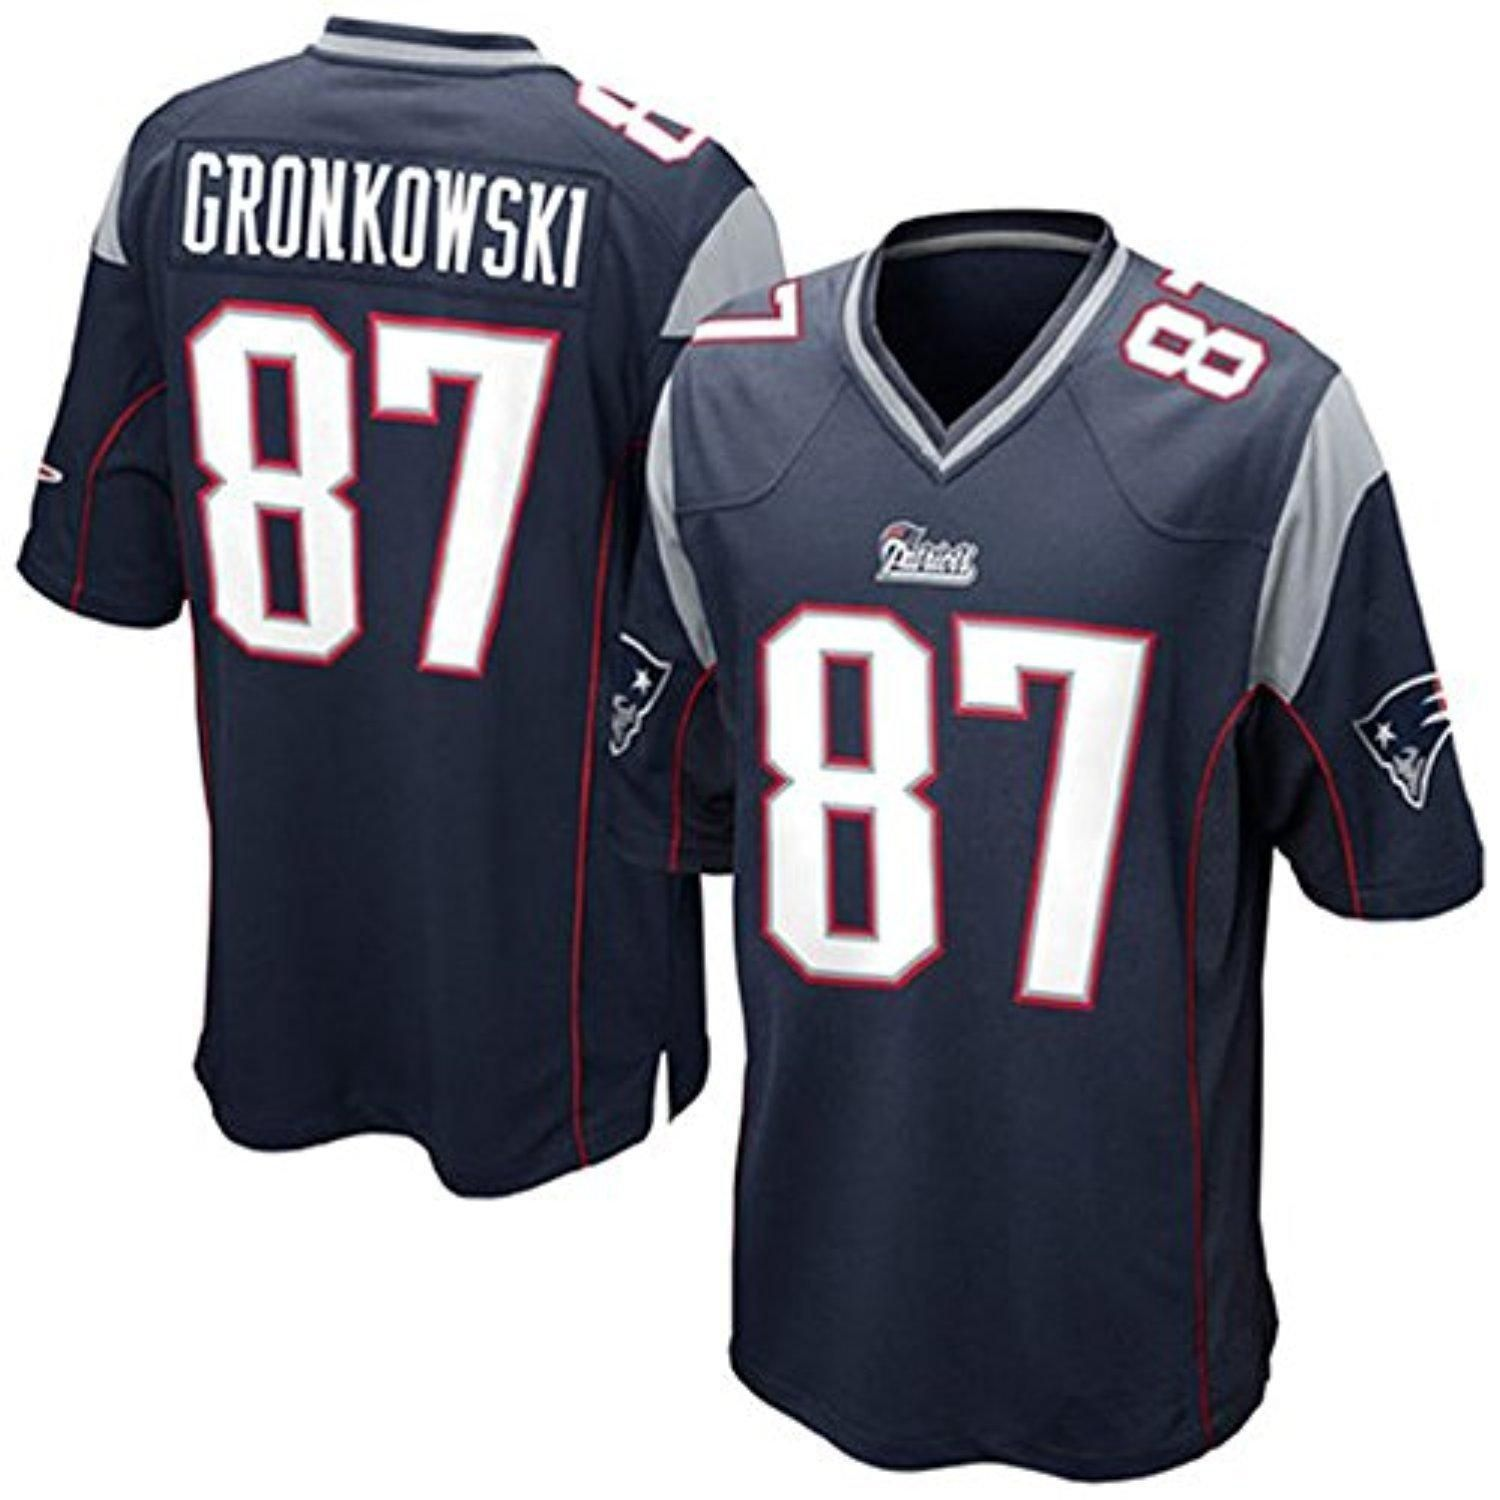 Bakeuouilin Boys Player Fashion Football Jersey New England Patriots 87 Rob Gronkowski Black Navy New England Patriots Game Jersey Patriots Tom Brady Jersey